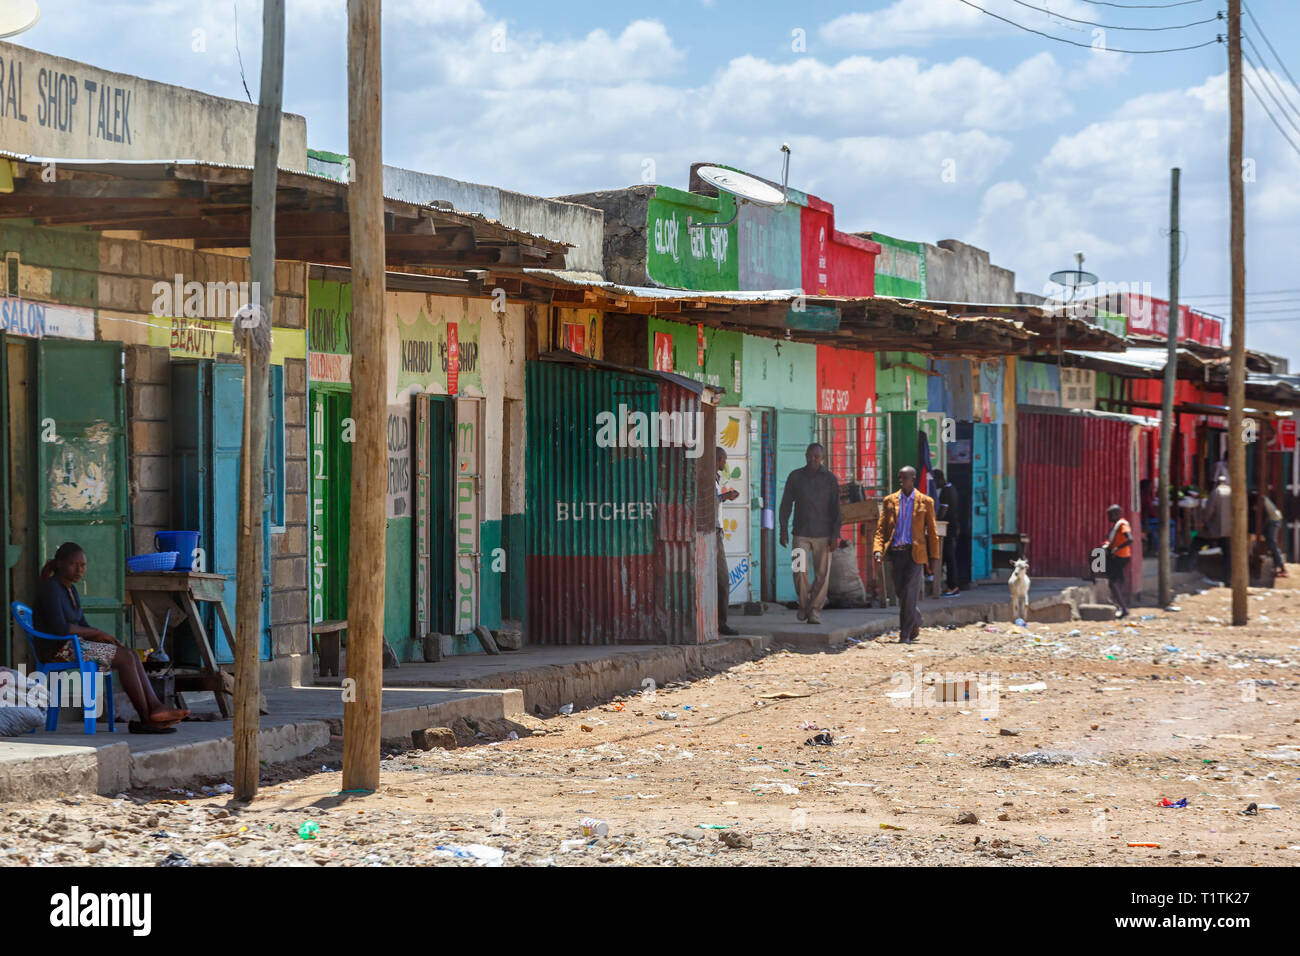 Small shops in a poor area in Africa - Stock Image